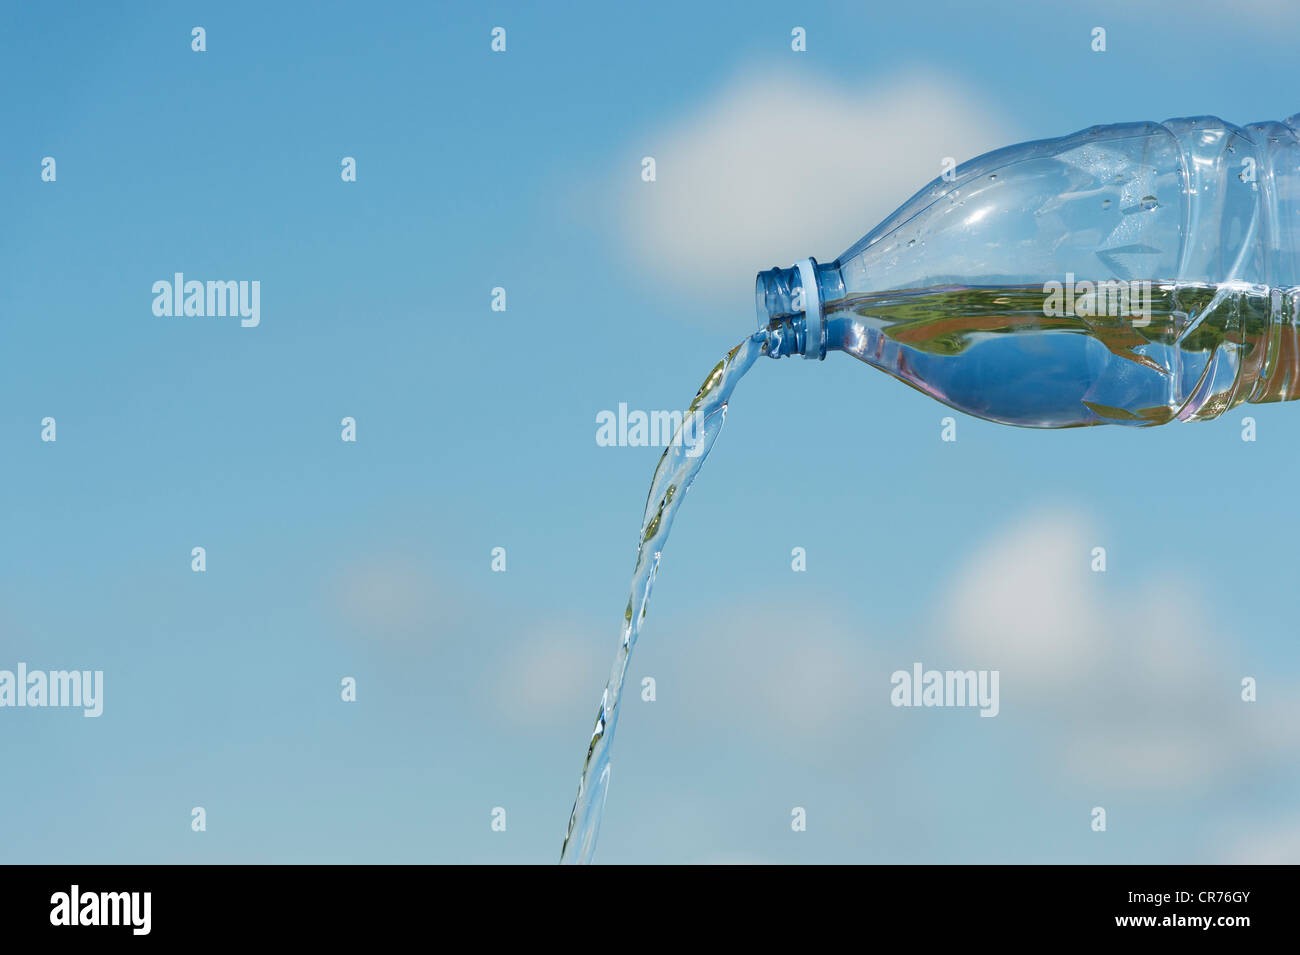 Pouring drinking water from a plastic bottle against a blue sky - Stock Image